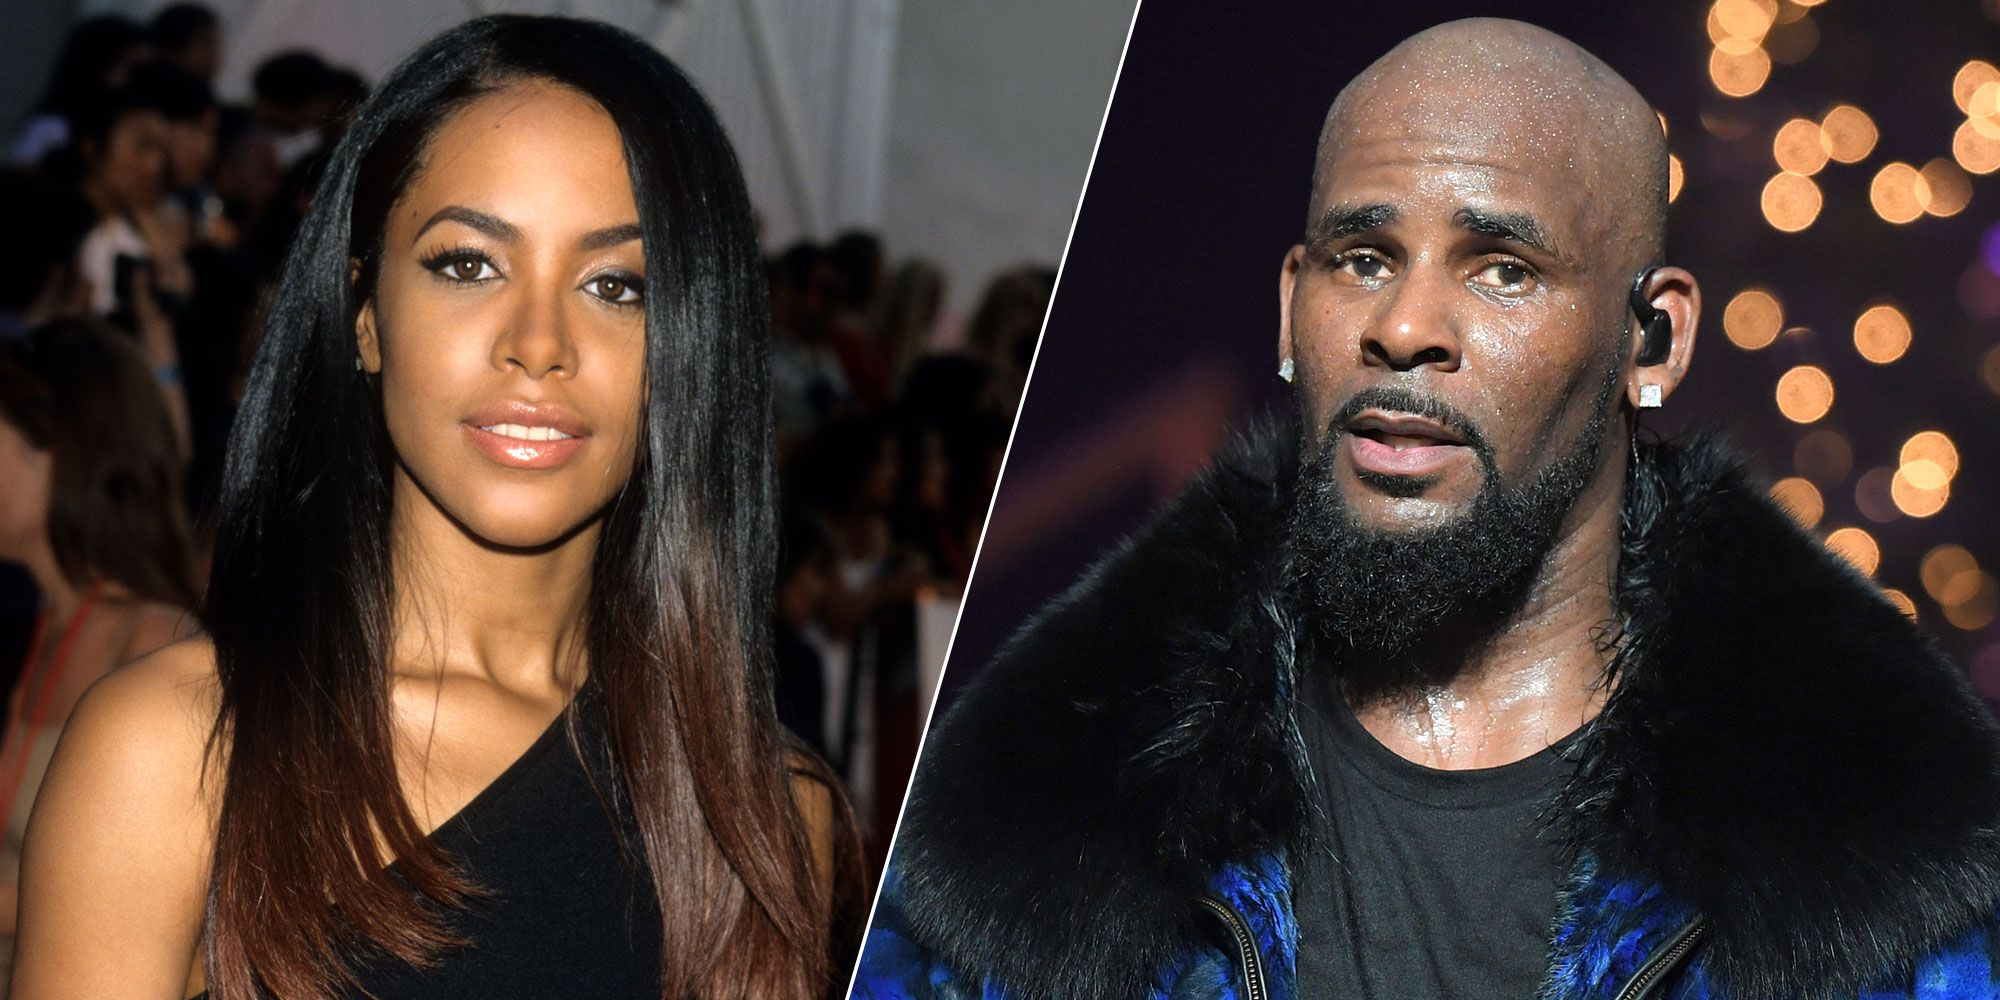 Surprising Celebrity Marriages - Celeb Couples You Didn't